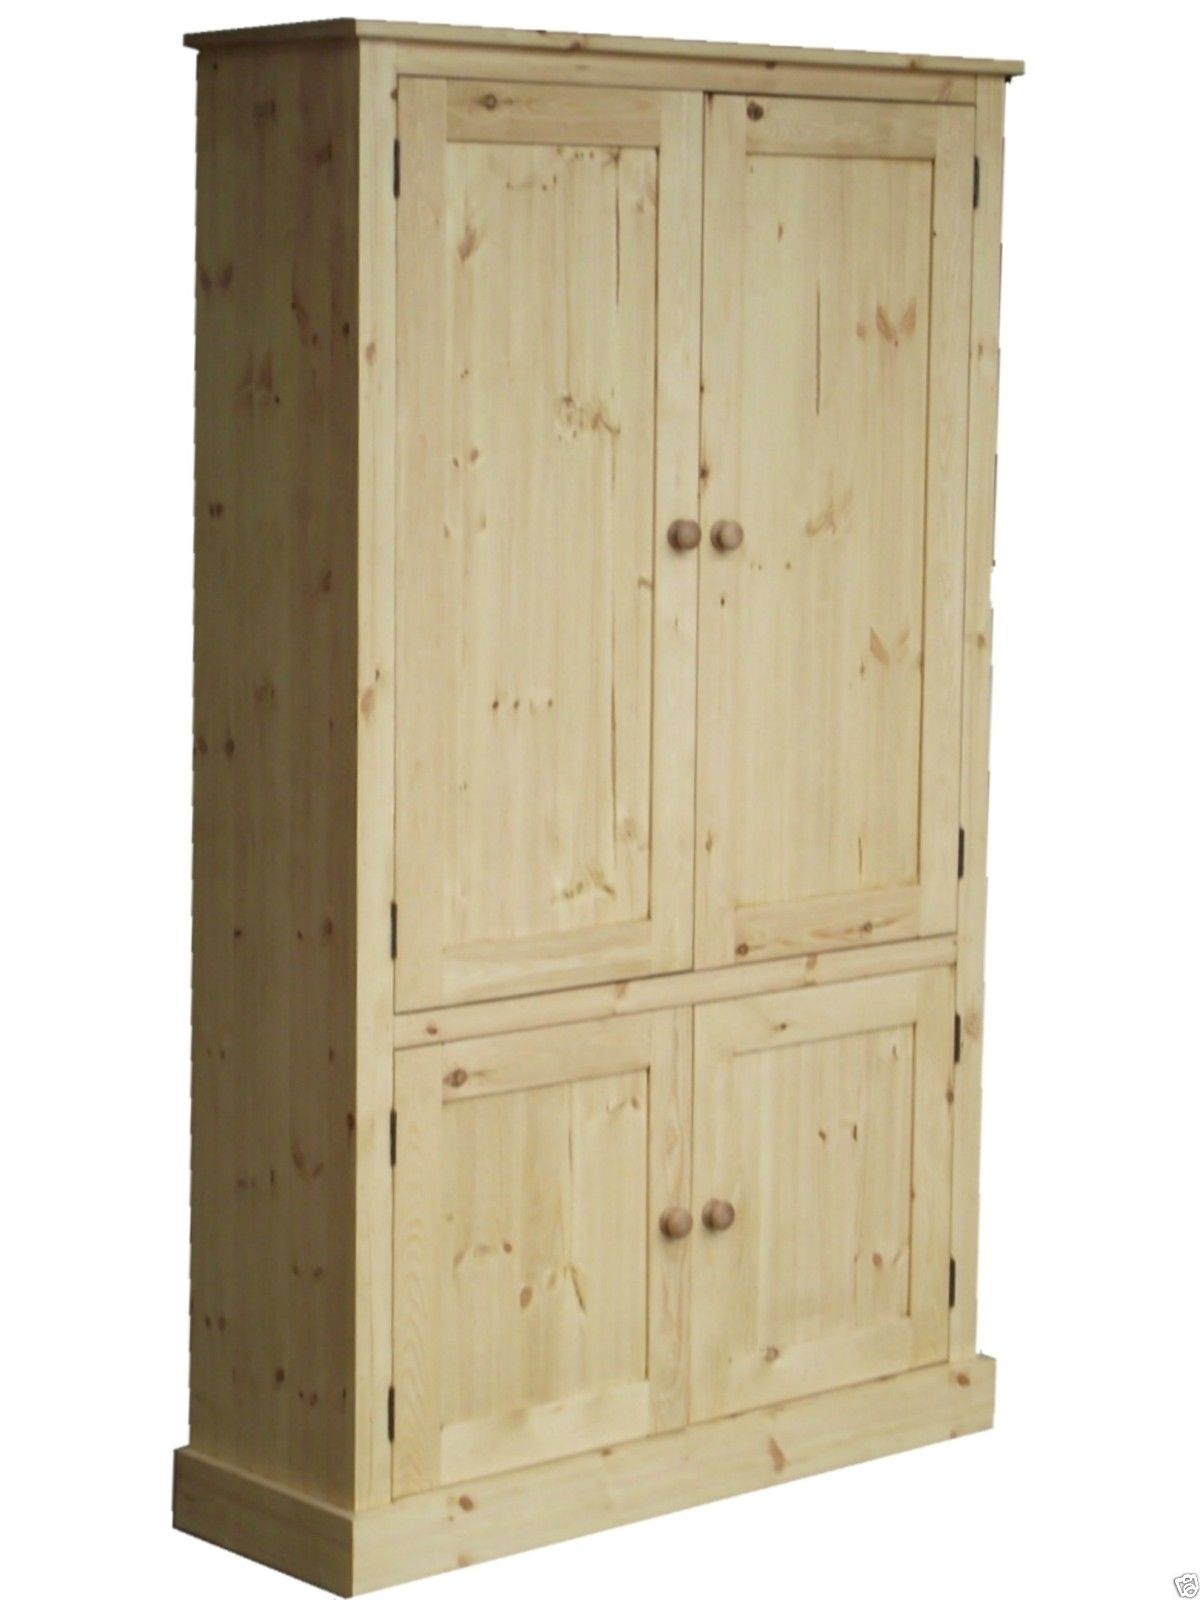 Linen Cupboards Furniture Ebay Regarding Free Cupboards (Image 14 of 15)